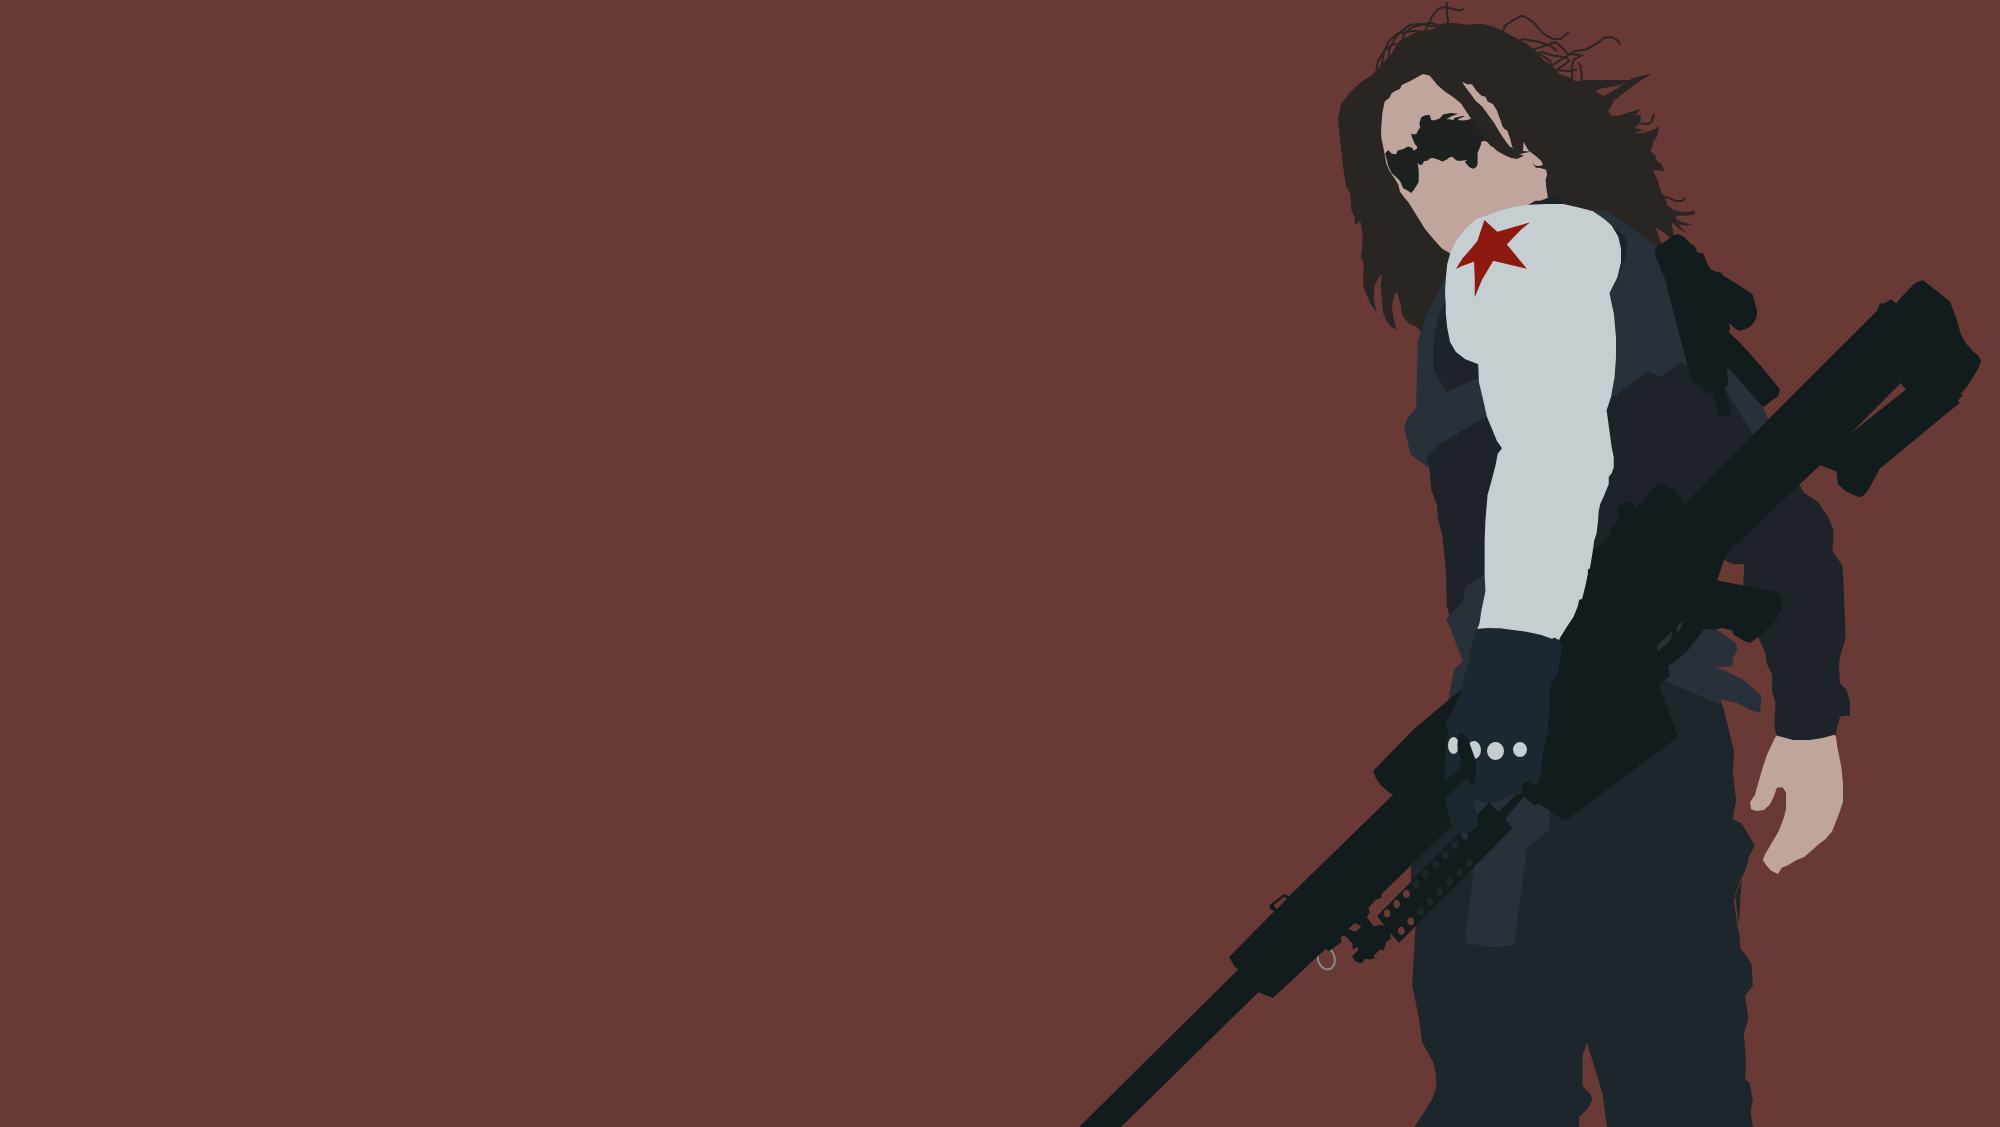 the winter soldier by reverendtundra on deviantart